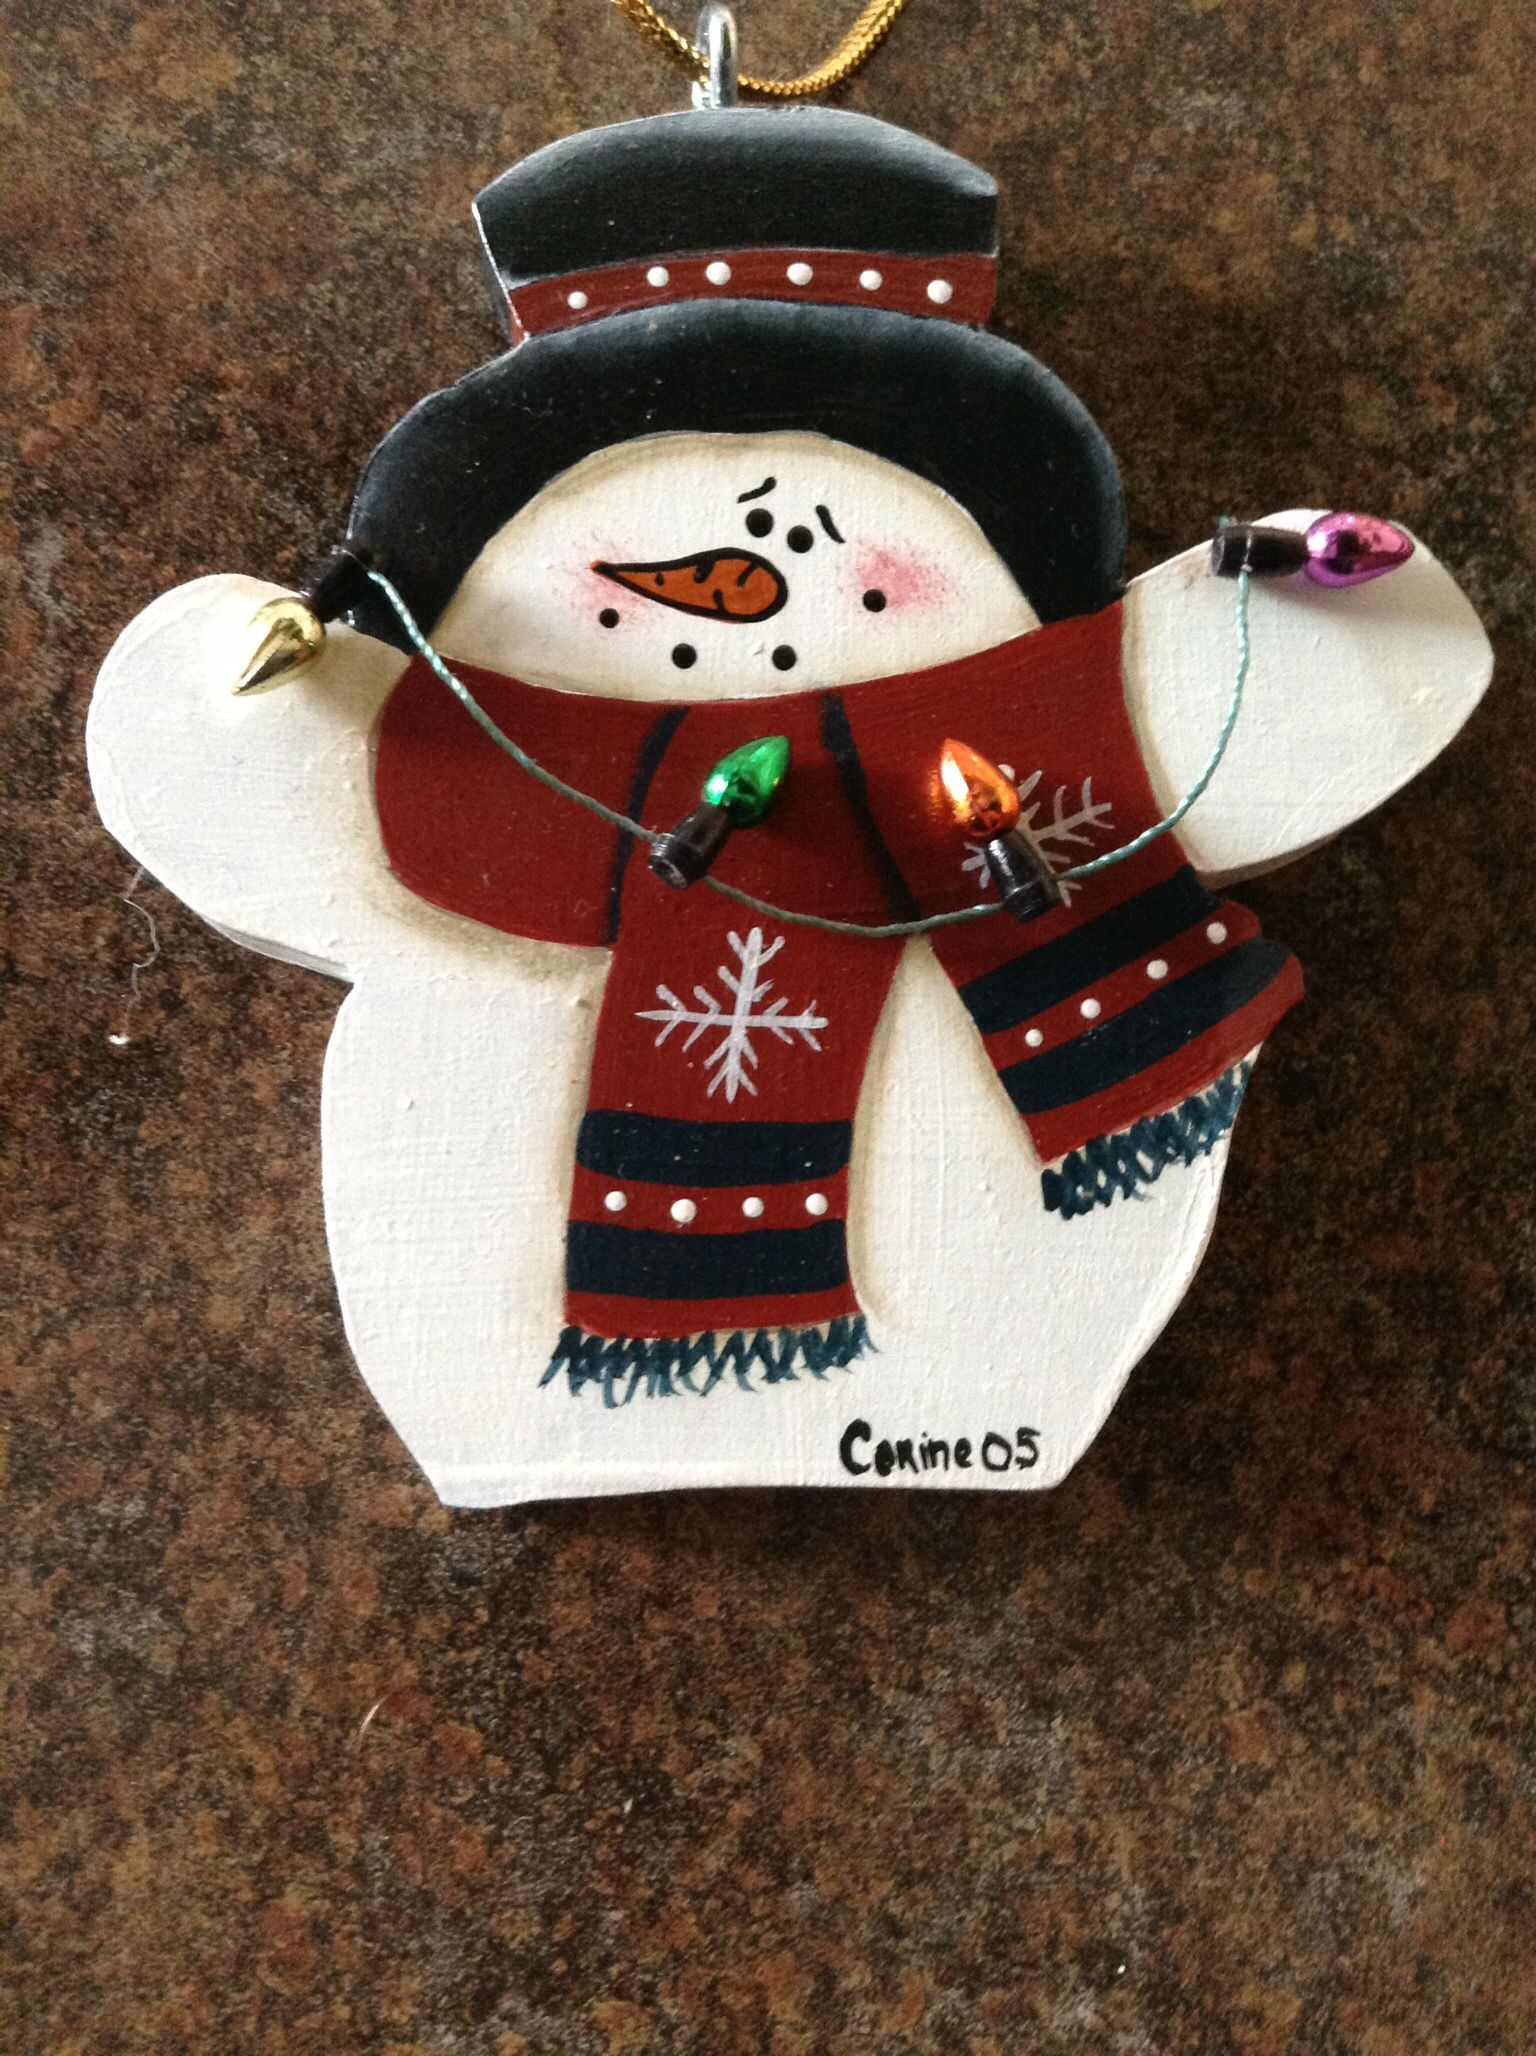 Snowman Ornament Tole Painting Christmas Crafts Snowman Diy Christmas Ornaments Christmas Crafts For Gifts